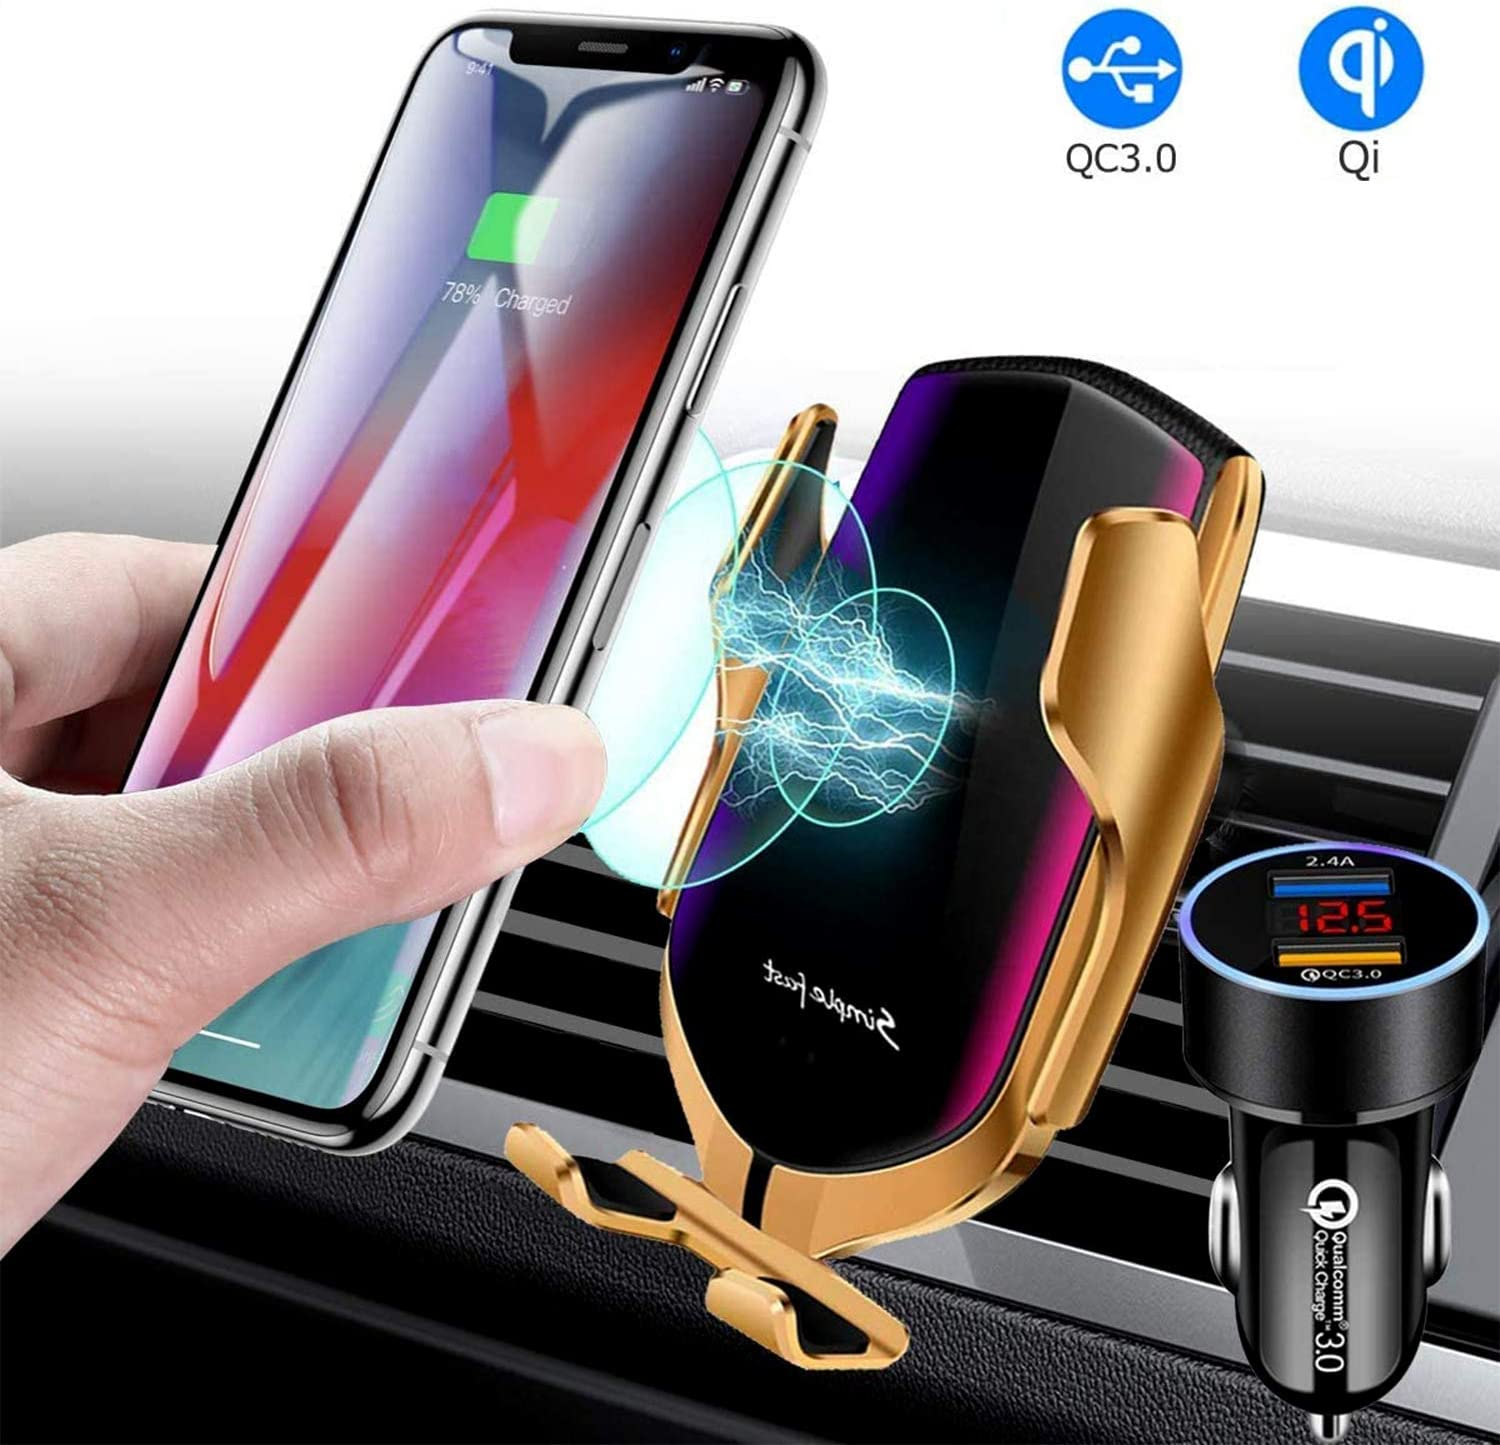 Gold Smart Sensor Wireless Car Charger Mount Samsung Galaxy S10//S9// S9+//S8 Note10//9 Automatic Clamping QI 10W//7.5W Fast Charging Car Charger Holder Compatible with iPhone 11//Xs//Xs Max//XR//8 etc